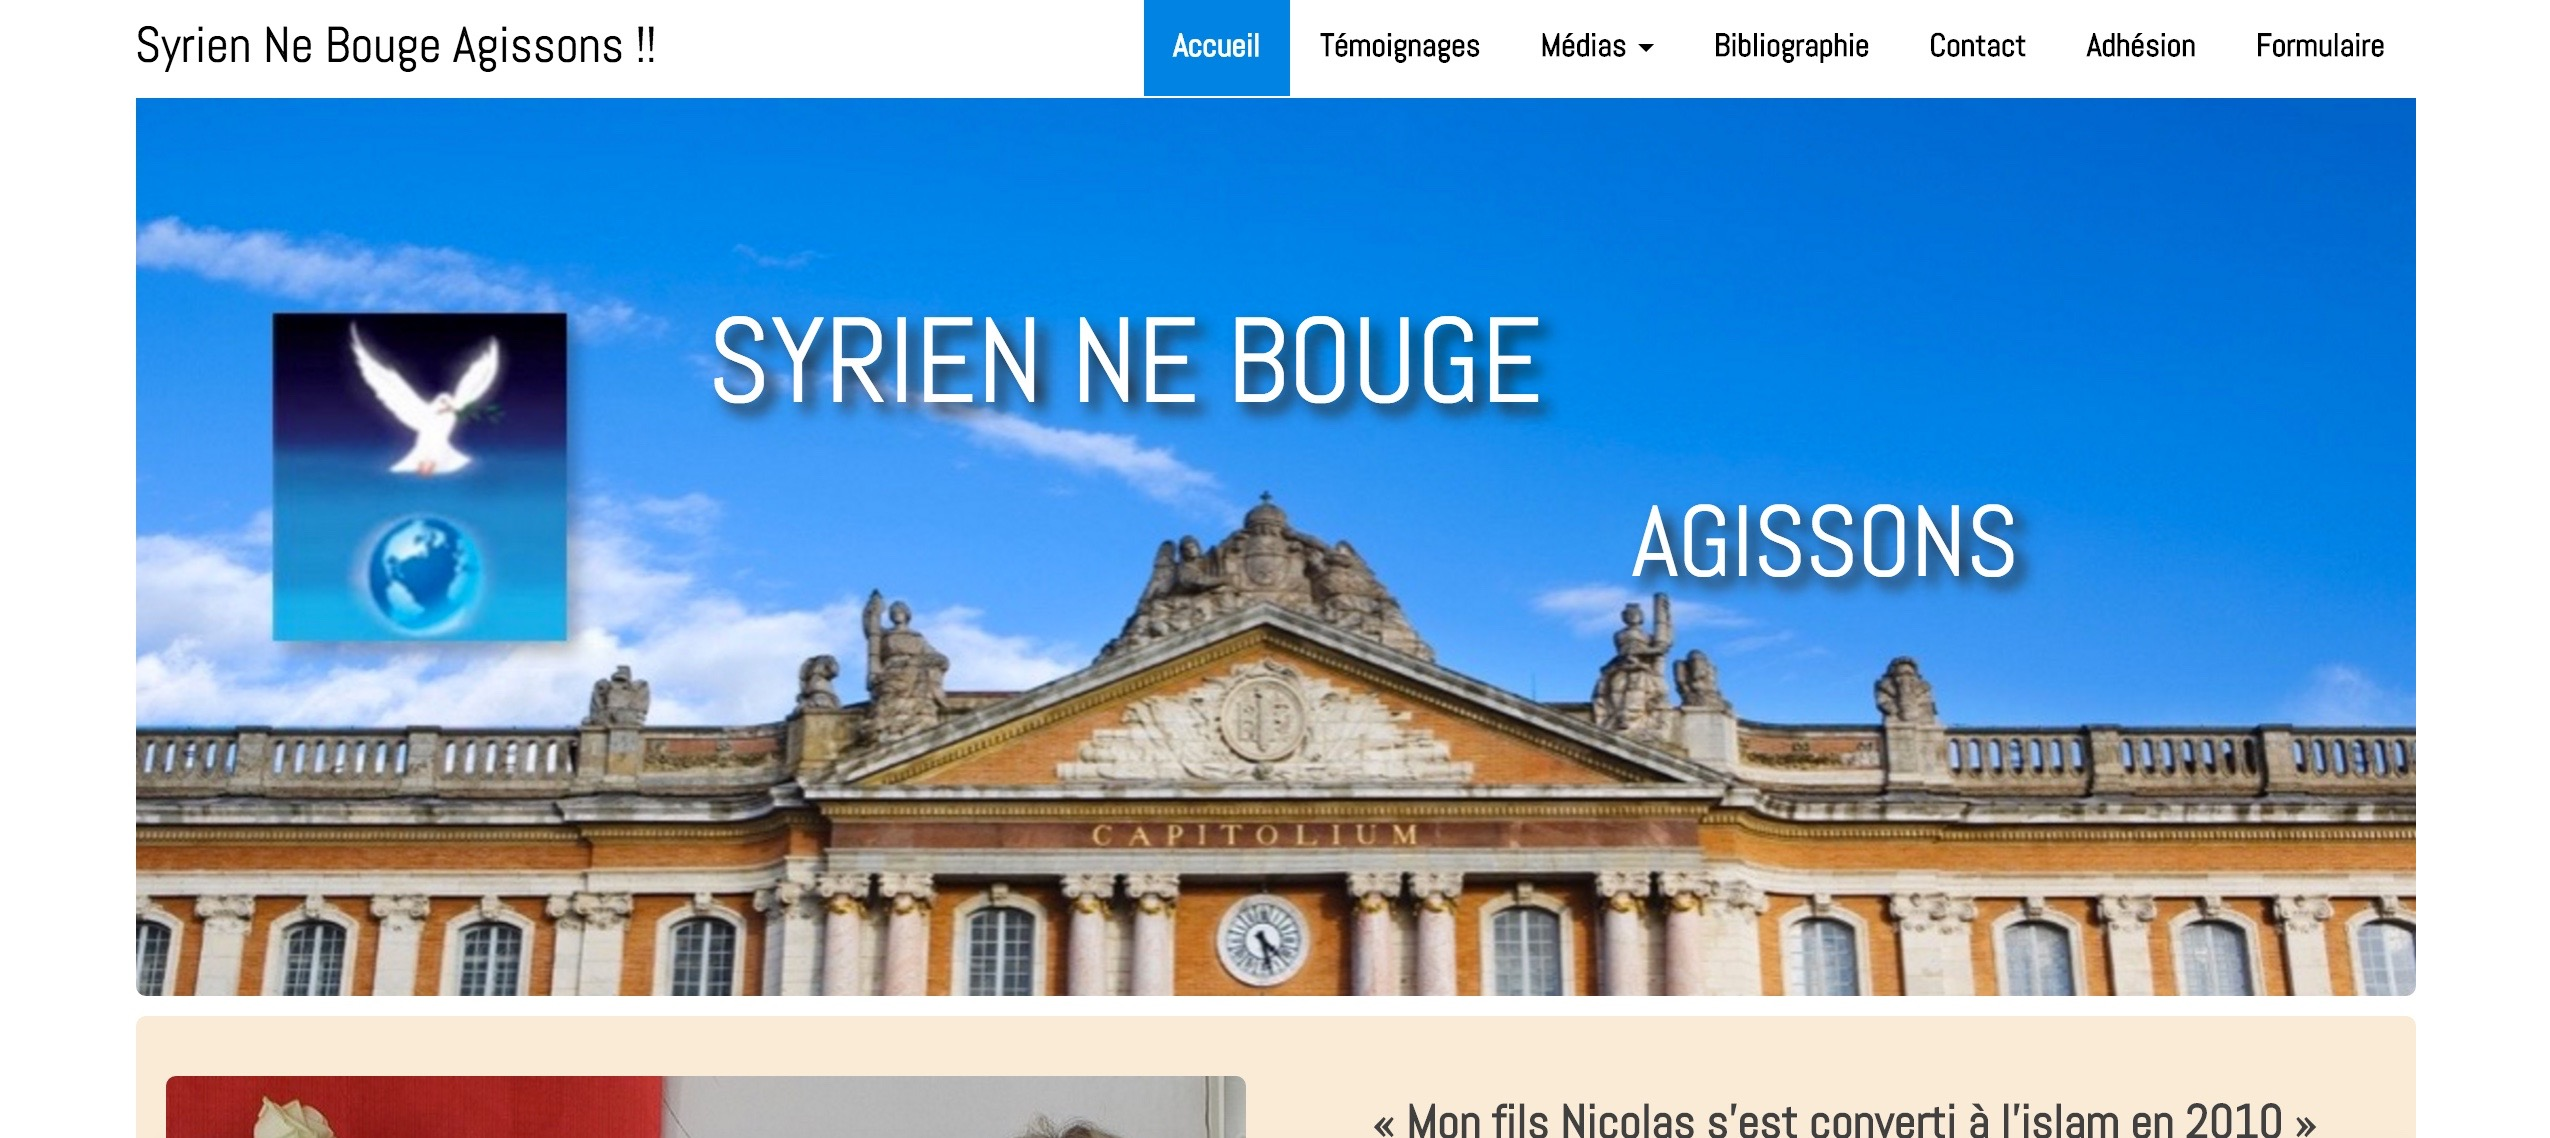 Miniature site association syrien ne bouge